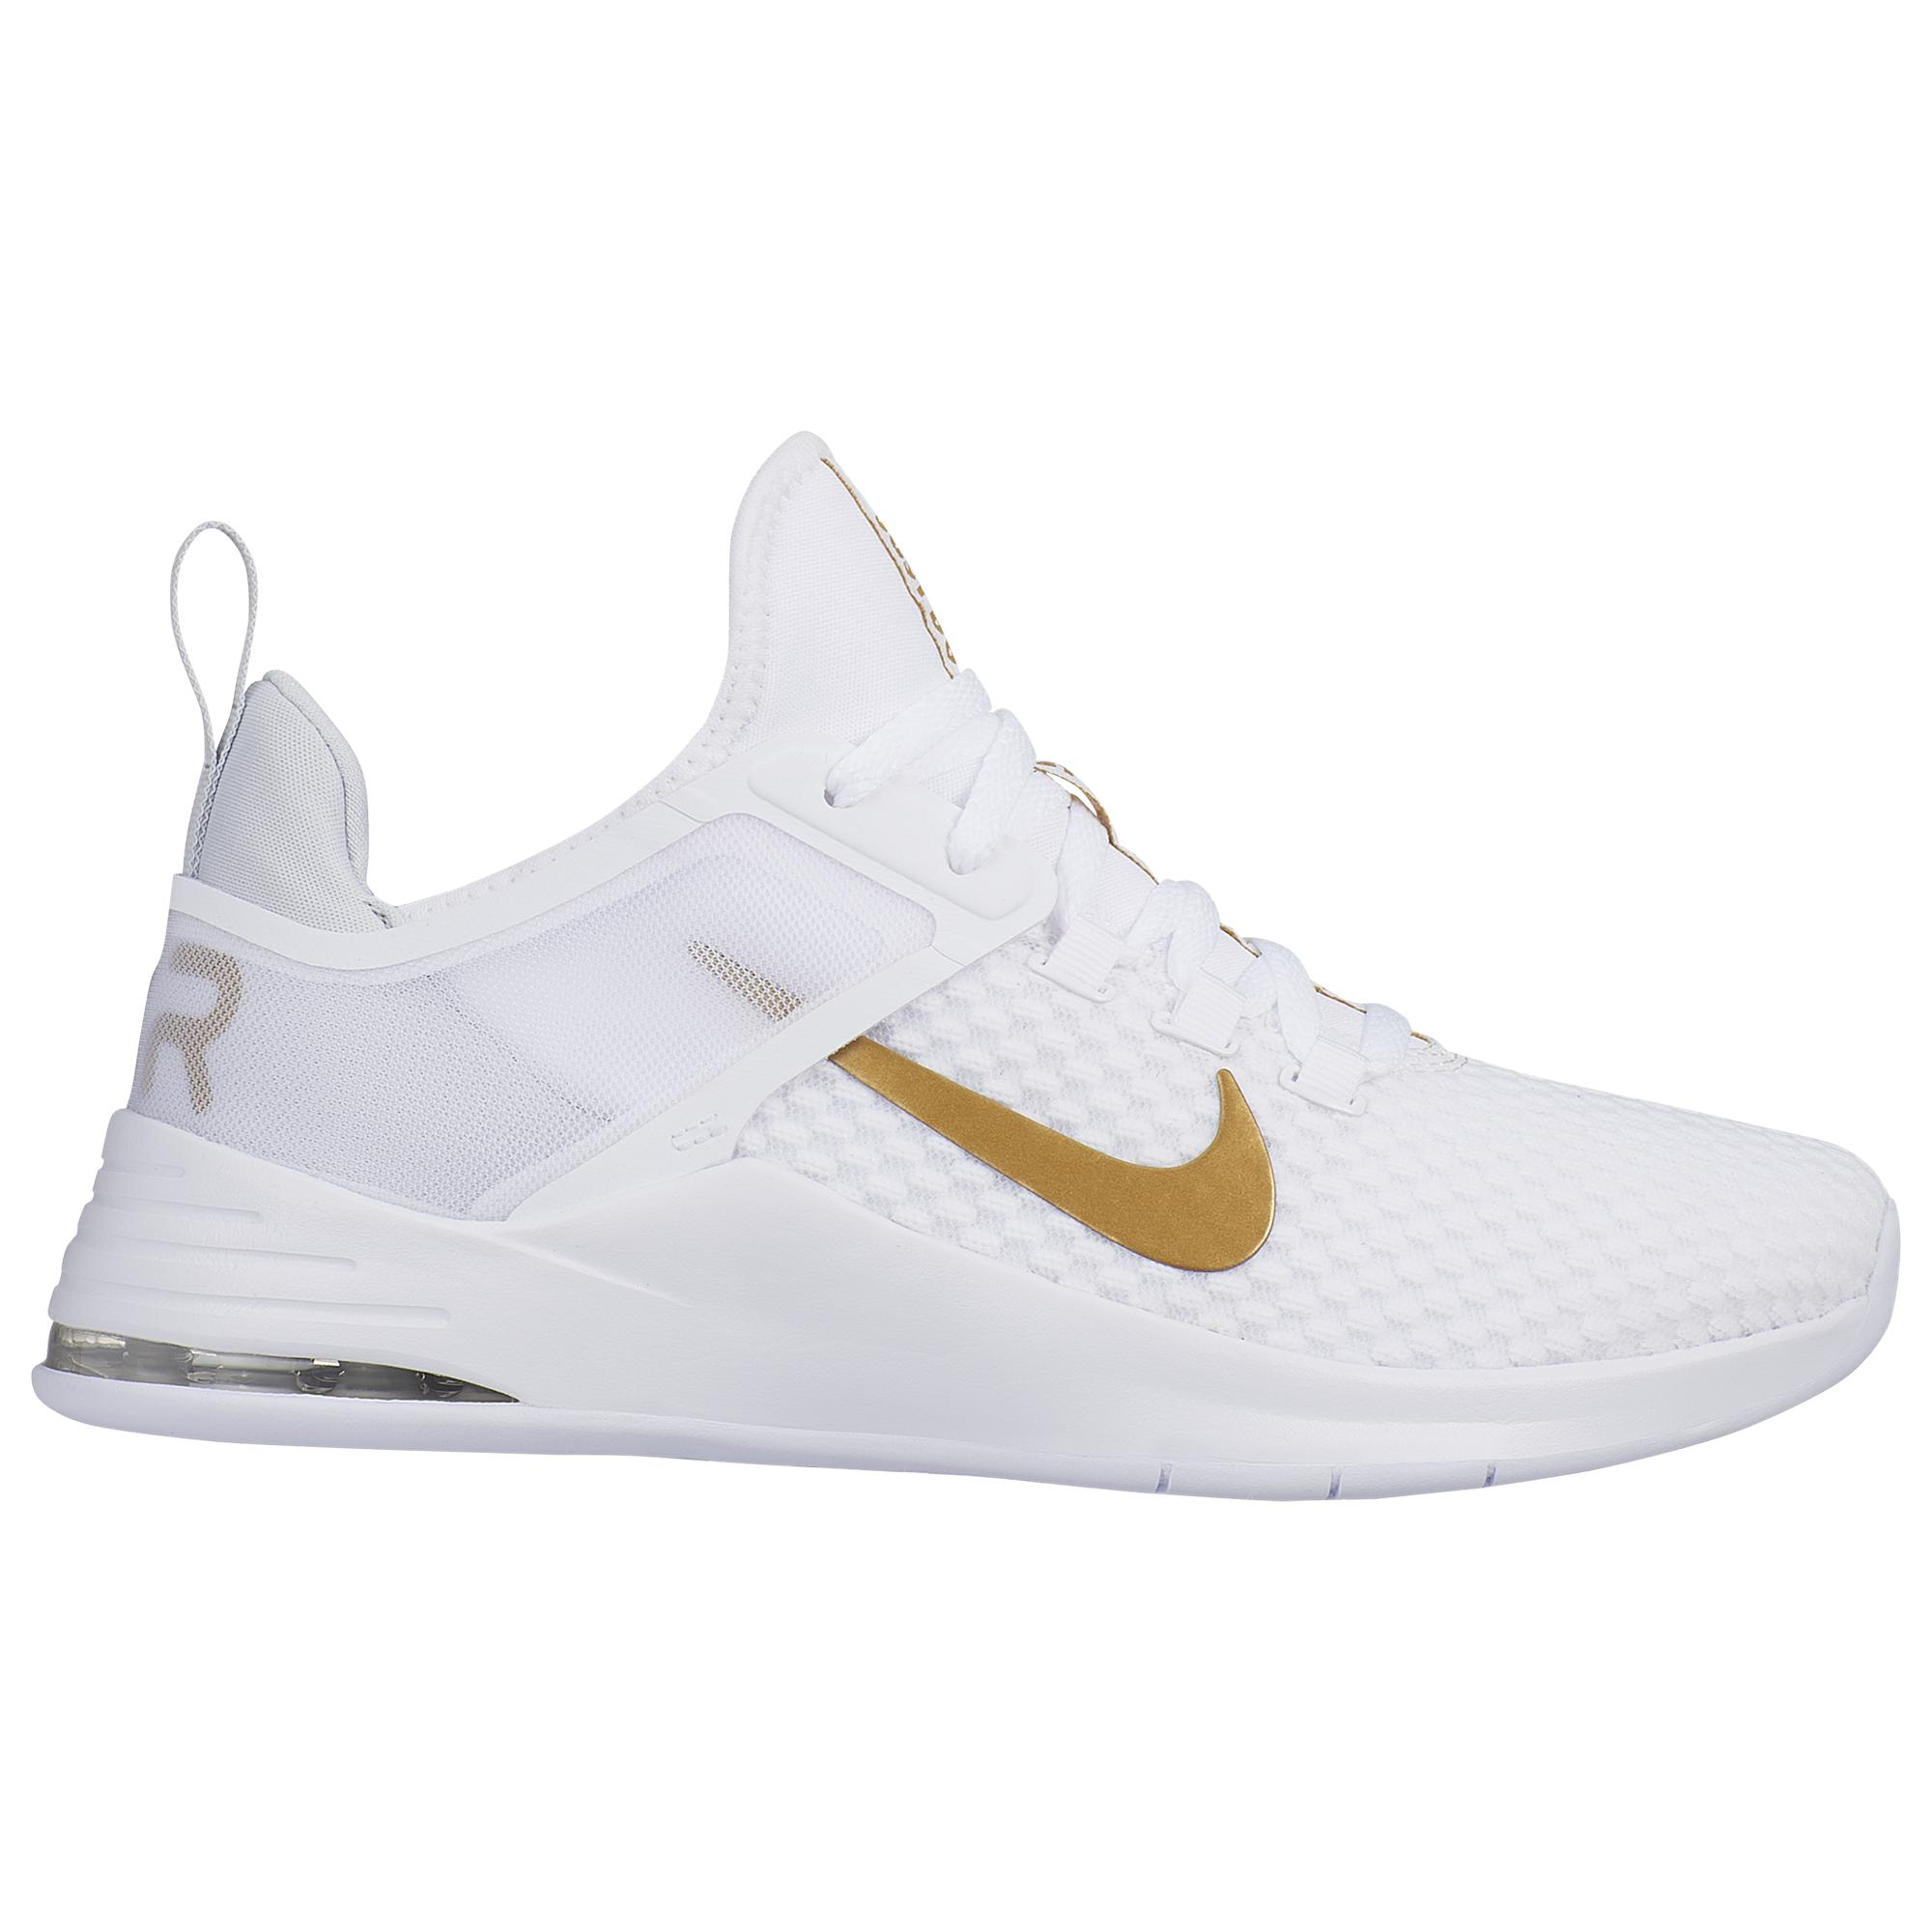 Nike Air Bella Tr 2 Training Shoes in